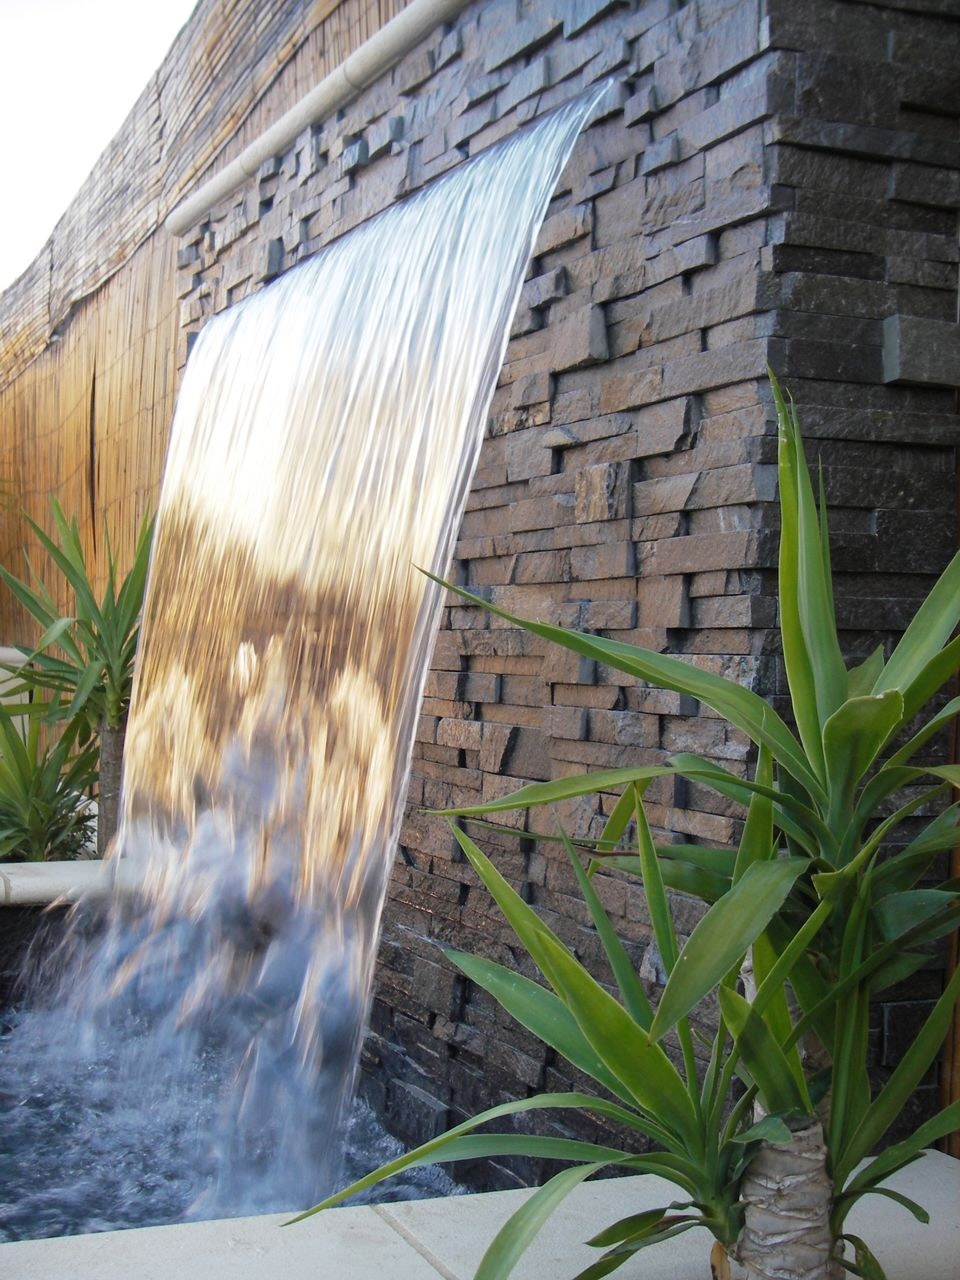 Waterfall features that splash into a reservoir or swimming pool can be built in almost any backyard or landscape.